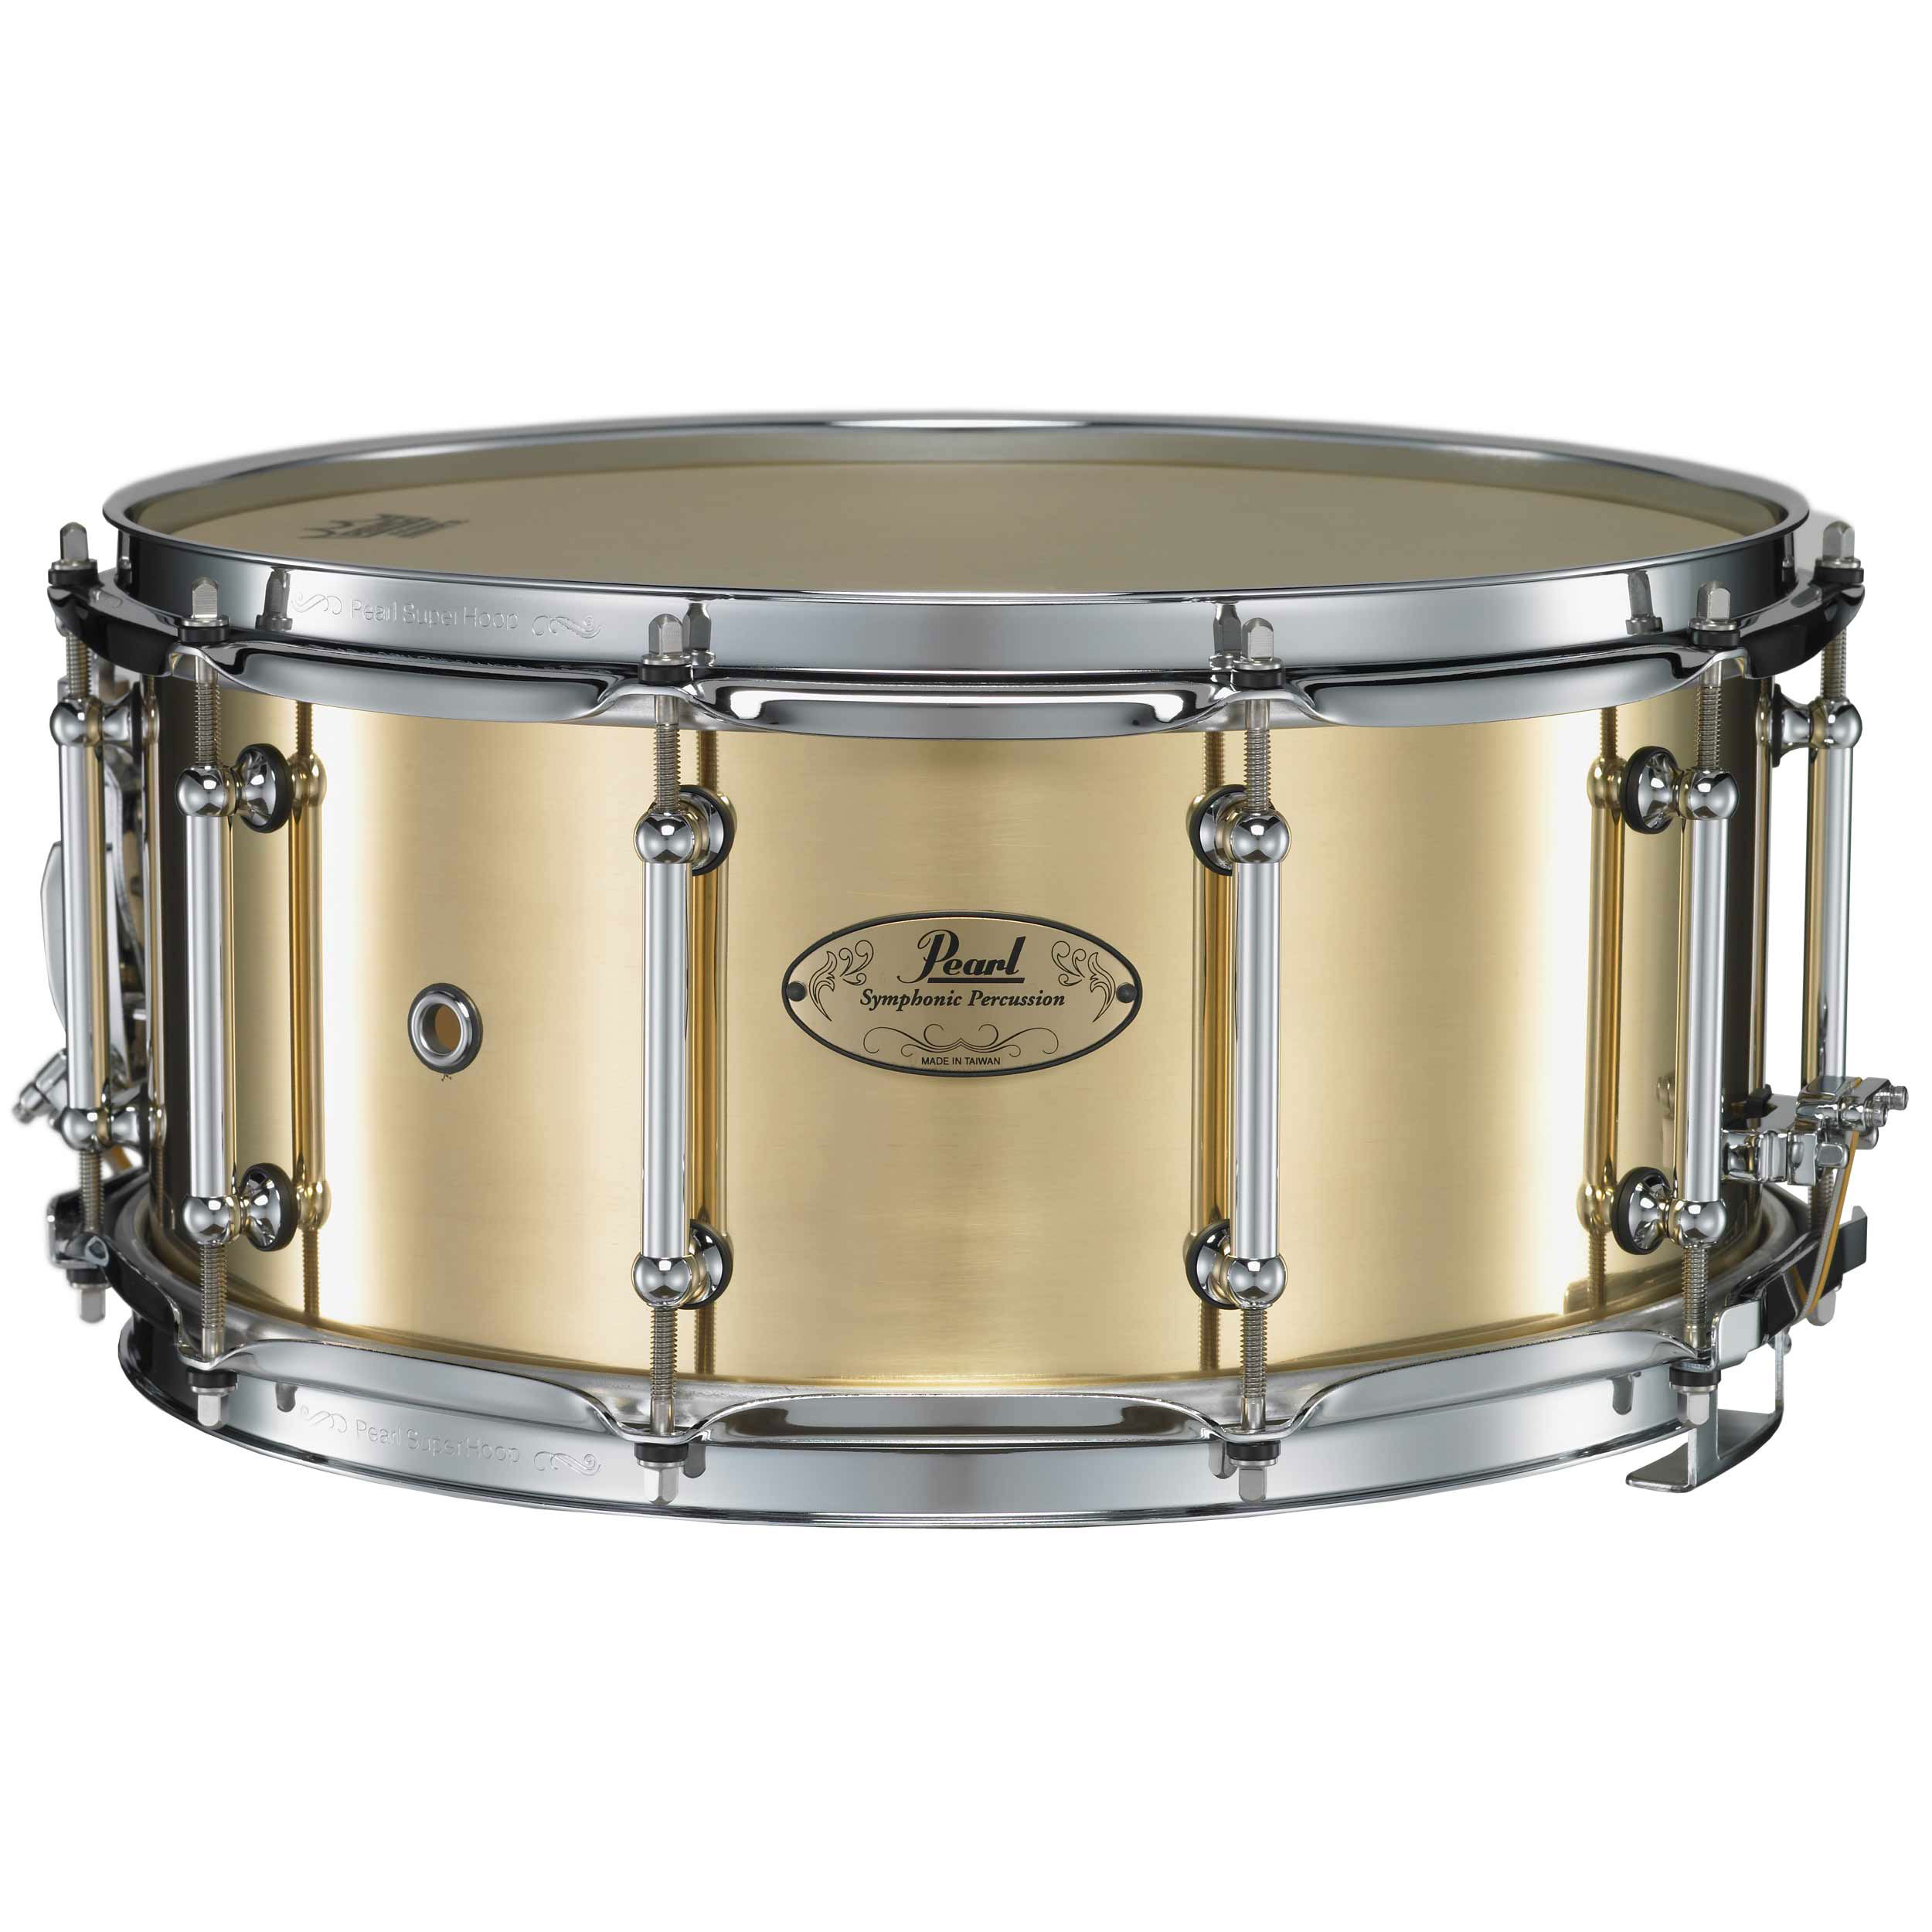 pearl 6 5 x 14 concert reference brass snare drum crb1465 lone star percussion. Black Bedroom Furniture Sets. Home Design Ideas